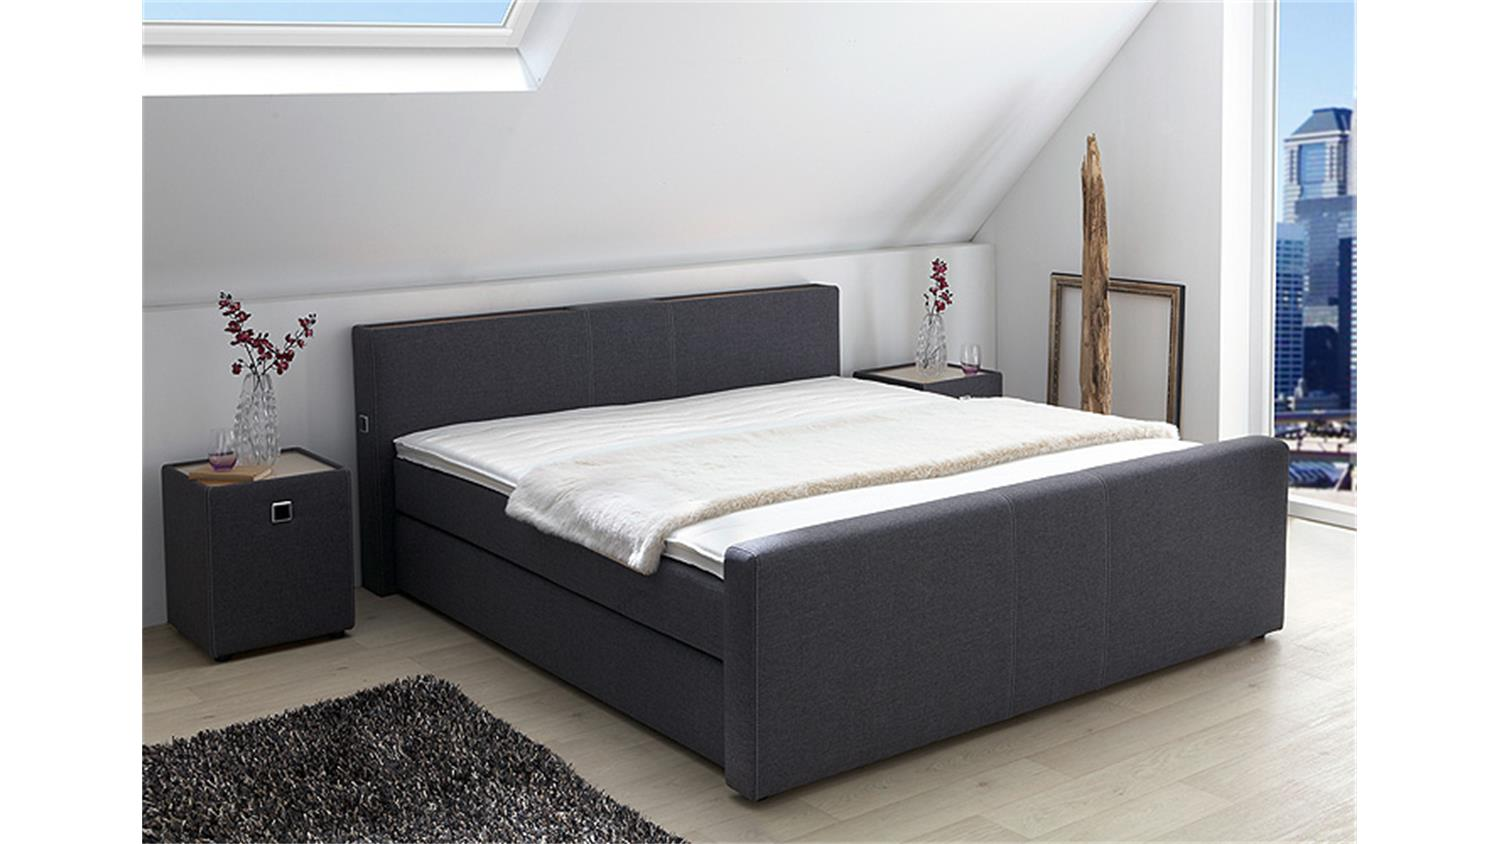 boxspring bett hohes kopfteil boxspring bett hohes. Black Bedroom Furniture Sets. Home Design Ideas